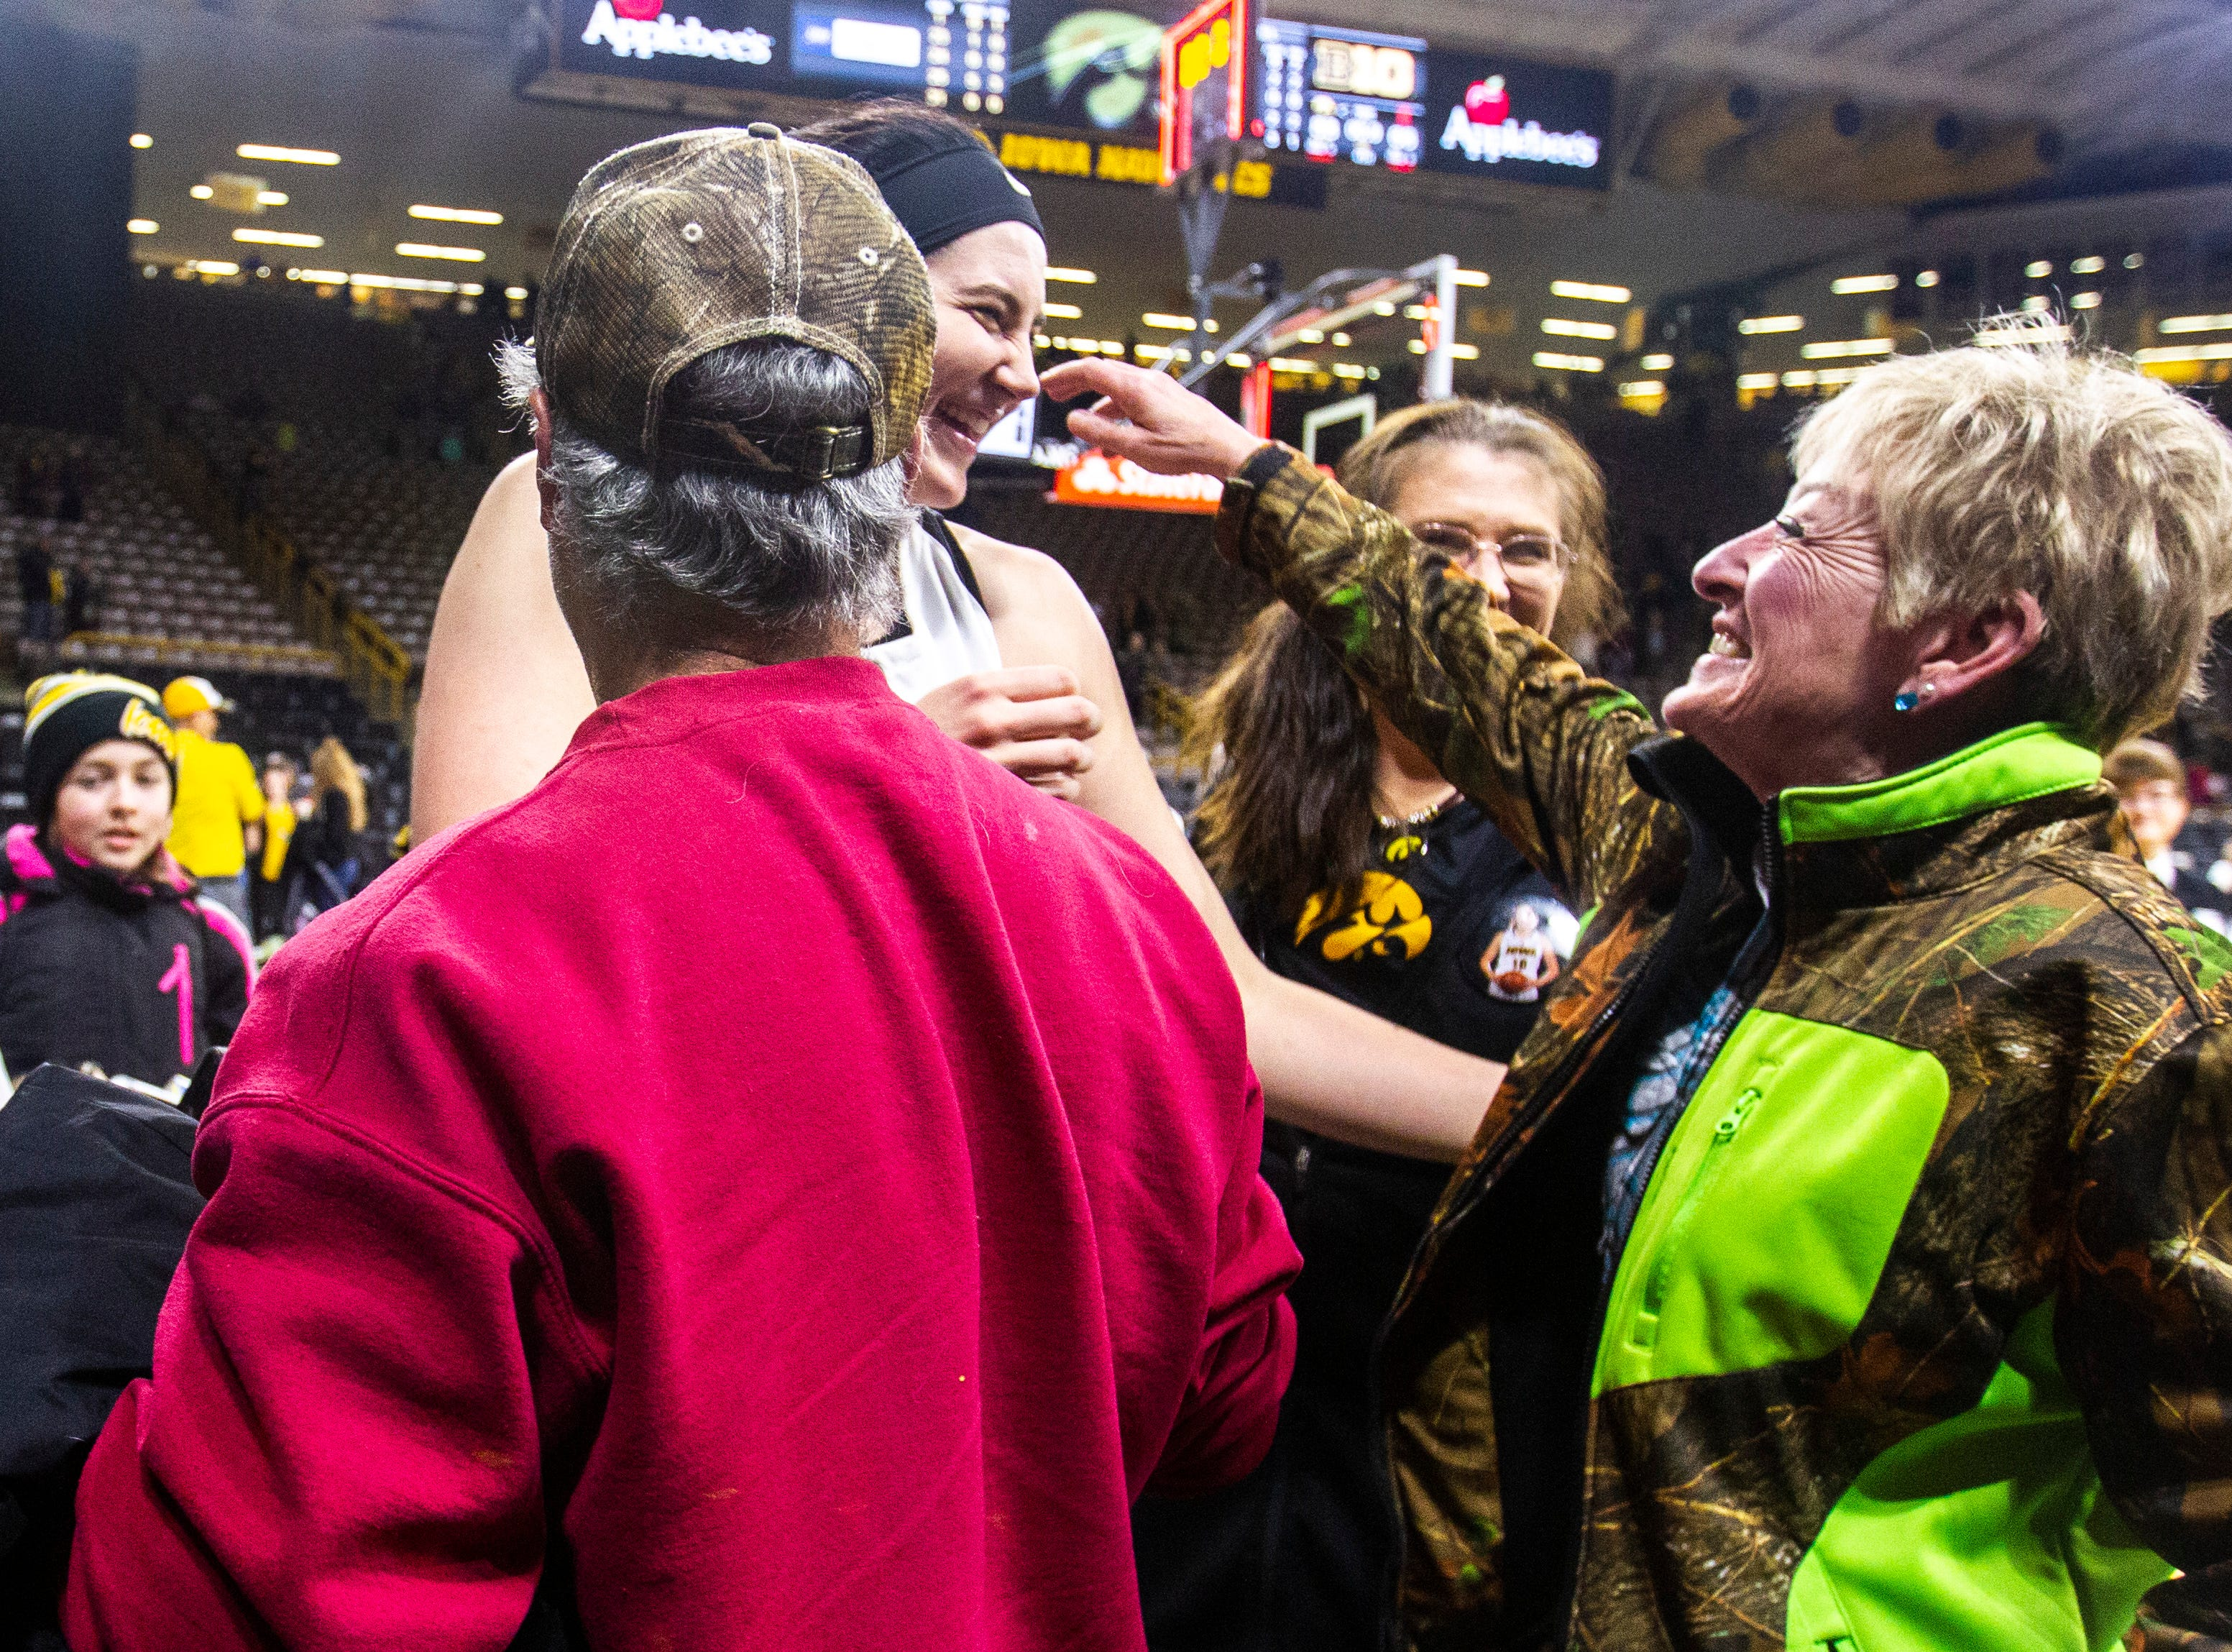 Iowa center Megan Gustafson (10) gets a hug from family members after a NCAA Big Ten Conference women's basketball game on Thursday, Feb. 14, 2019 at Carver-Hawkeye Arena in Iowa City, Iowa.